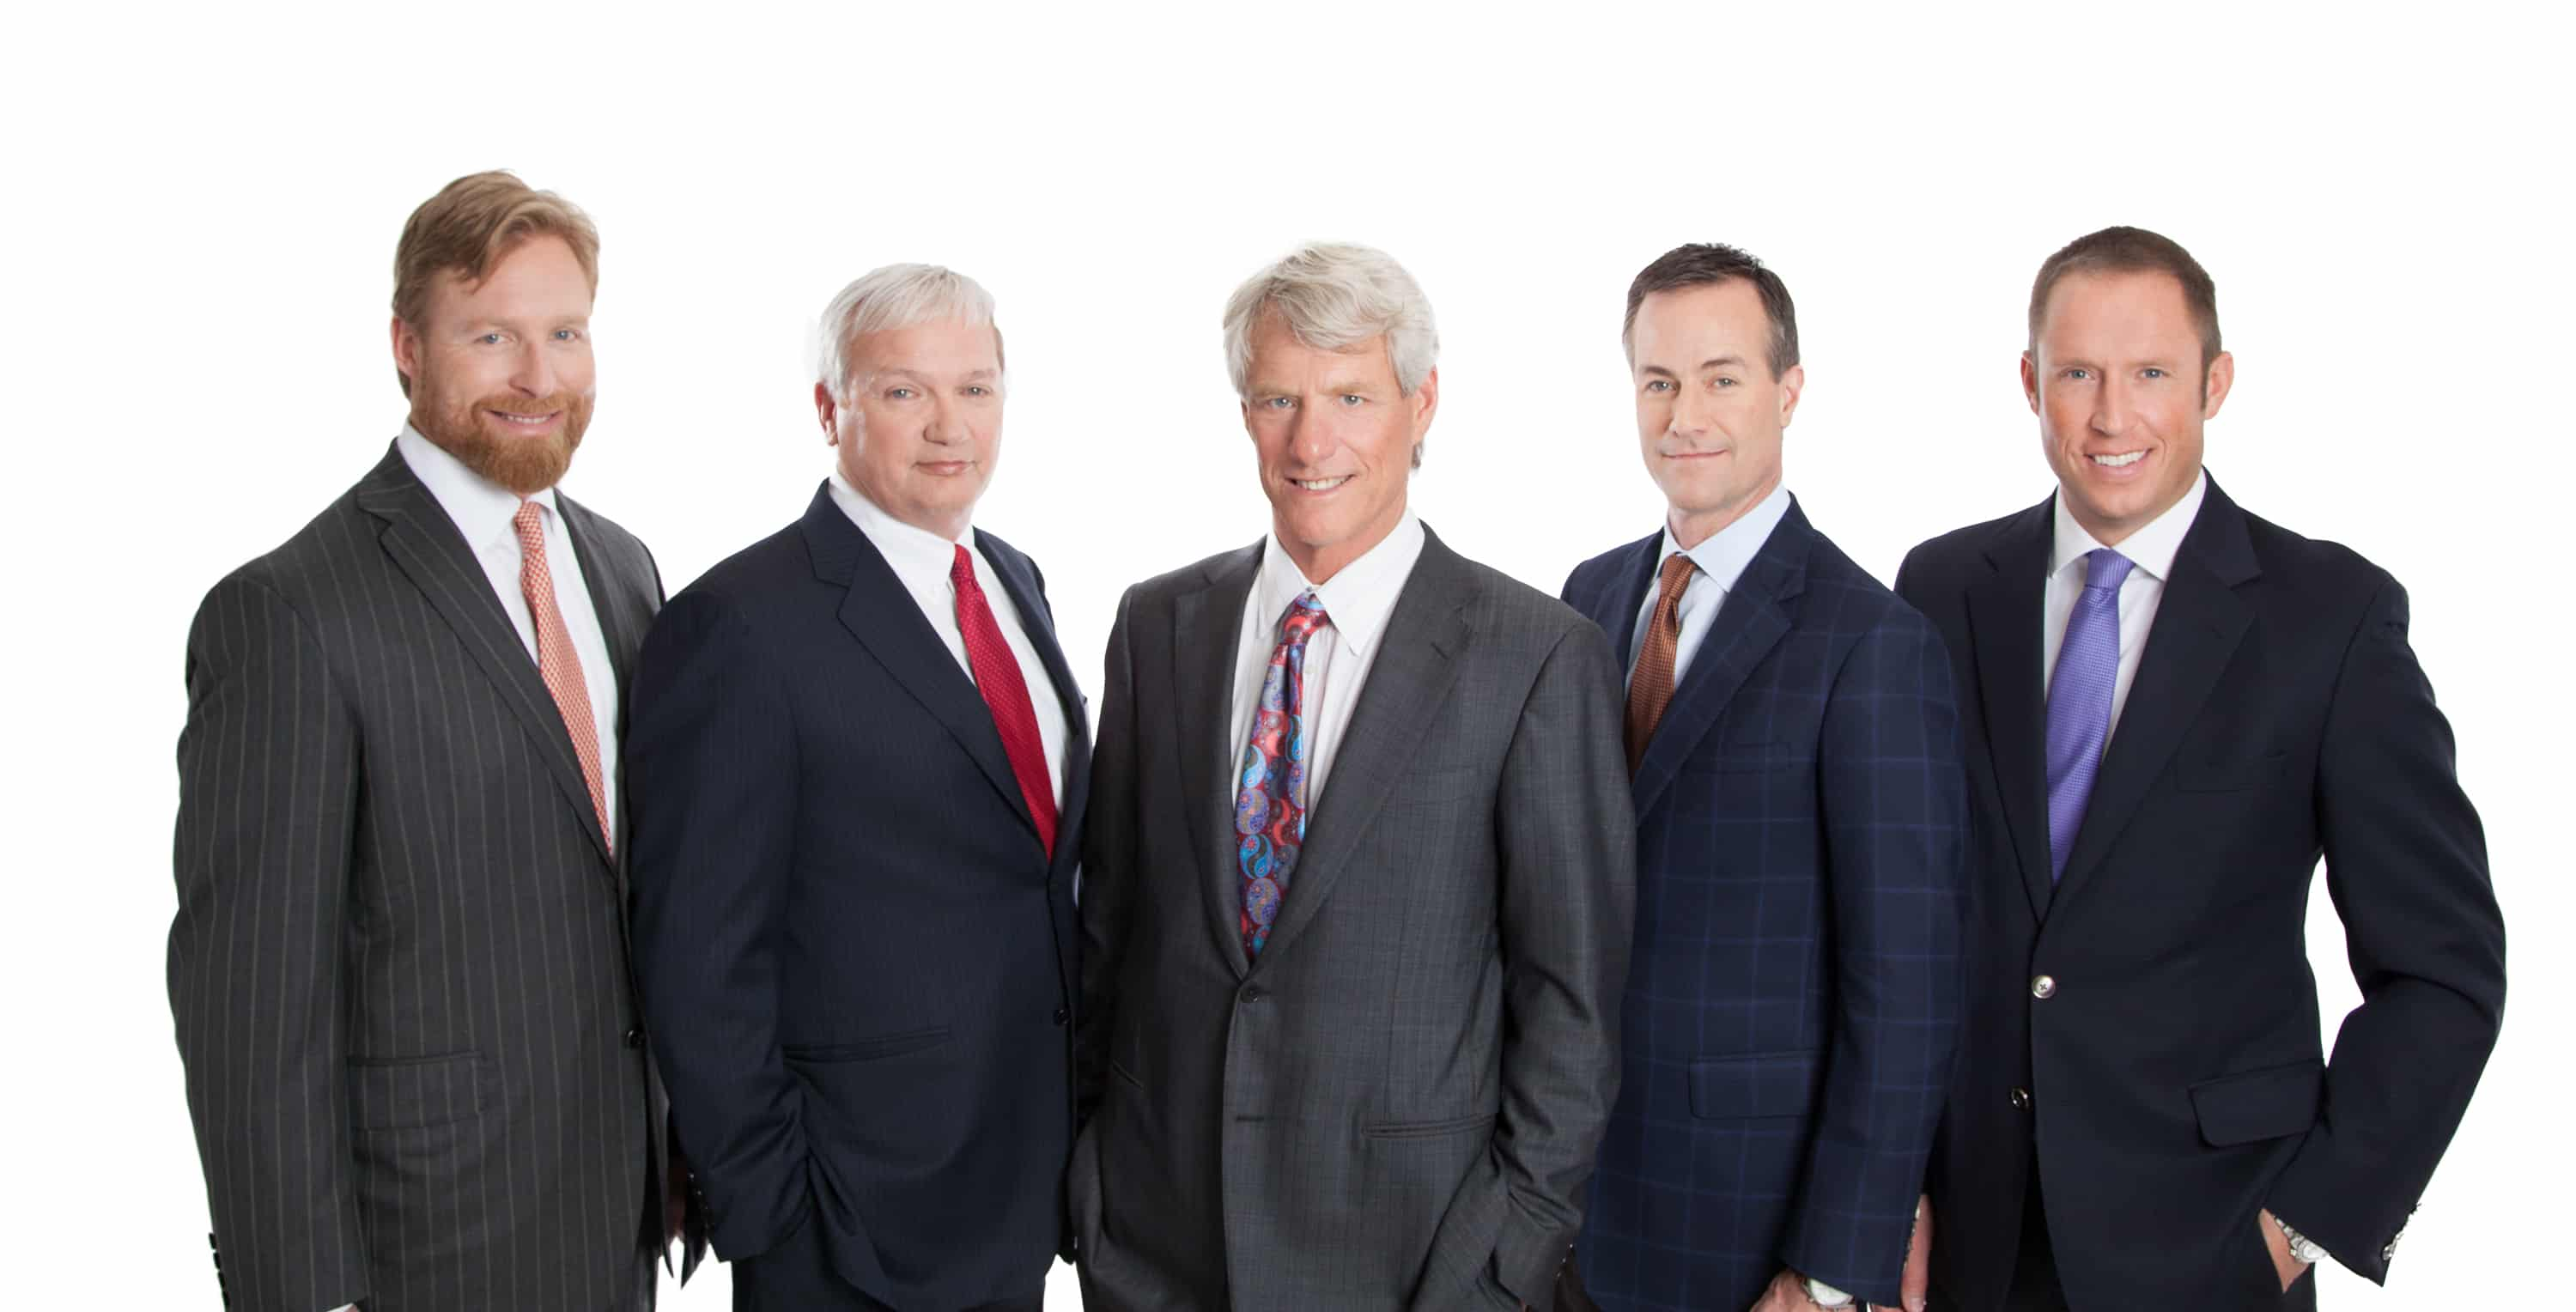 AQUILA's Founding Partners: Jay Lamy, Mike Murphy, Bart Matheney, Chris Perry and Chad Barrett